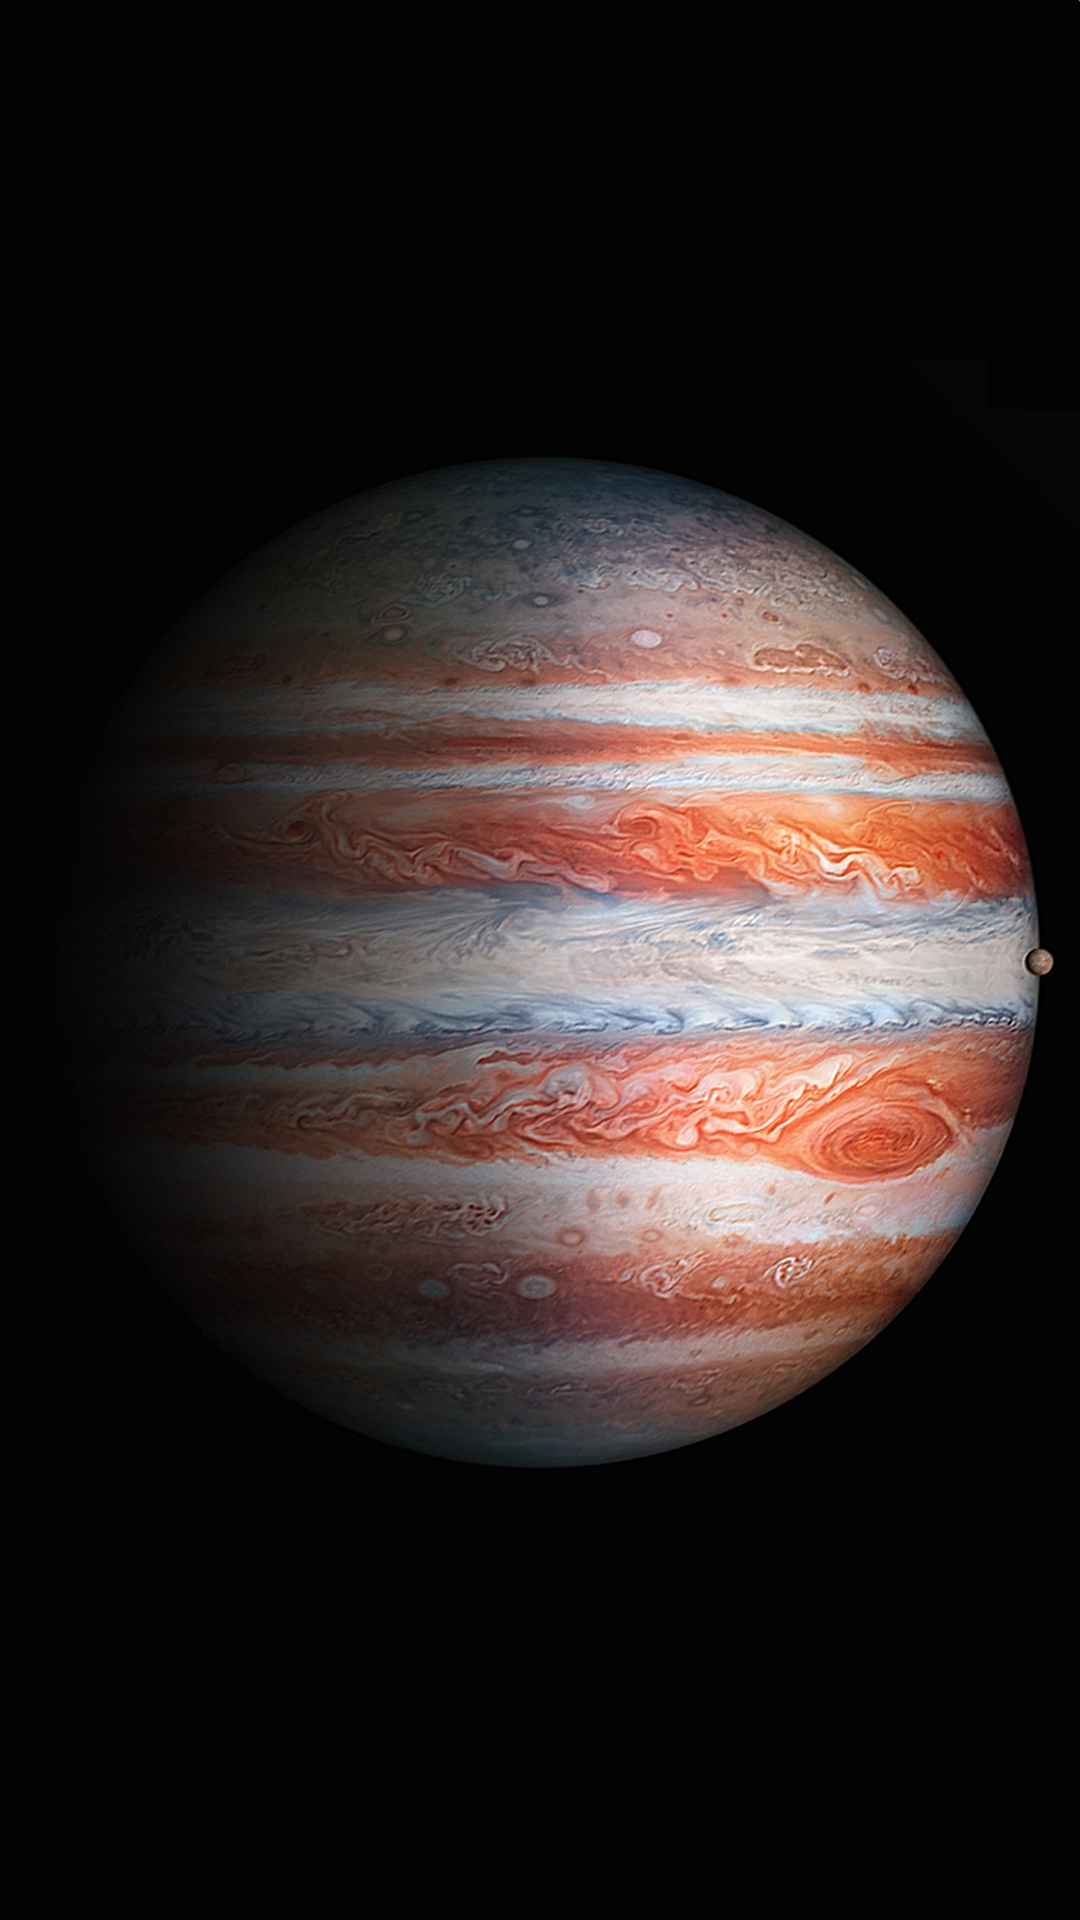 Jupiter Ipad Pro And Iphone Wallpaper Jupiter Wallpaper Iphone Wallpaper Jupiter Wallpaper Space